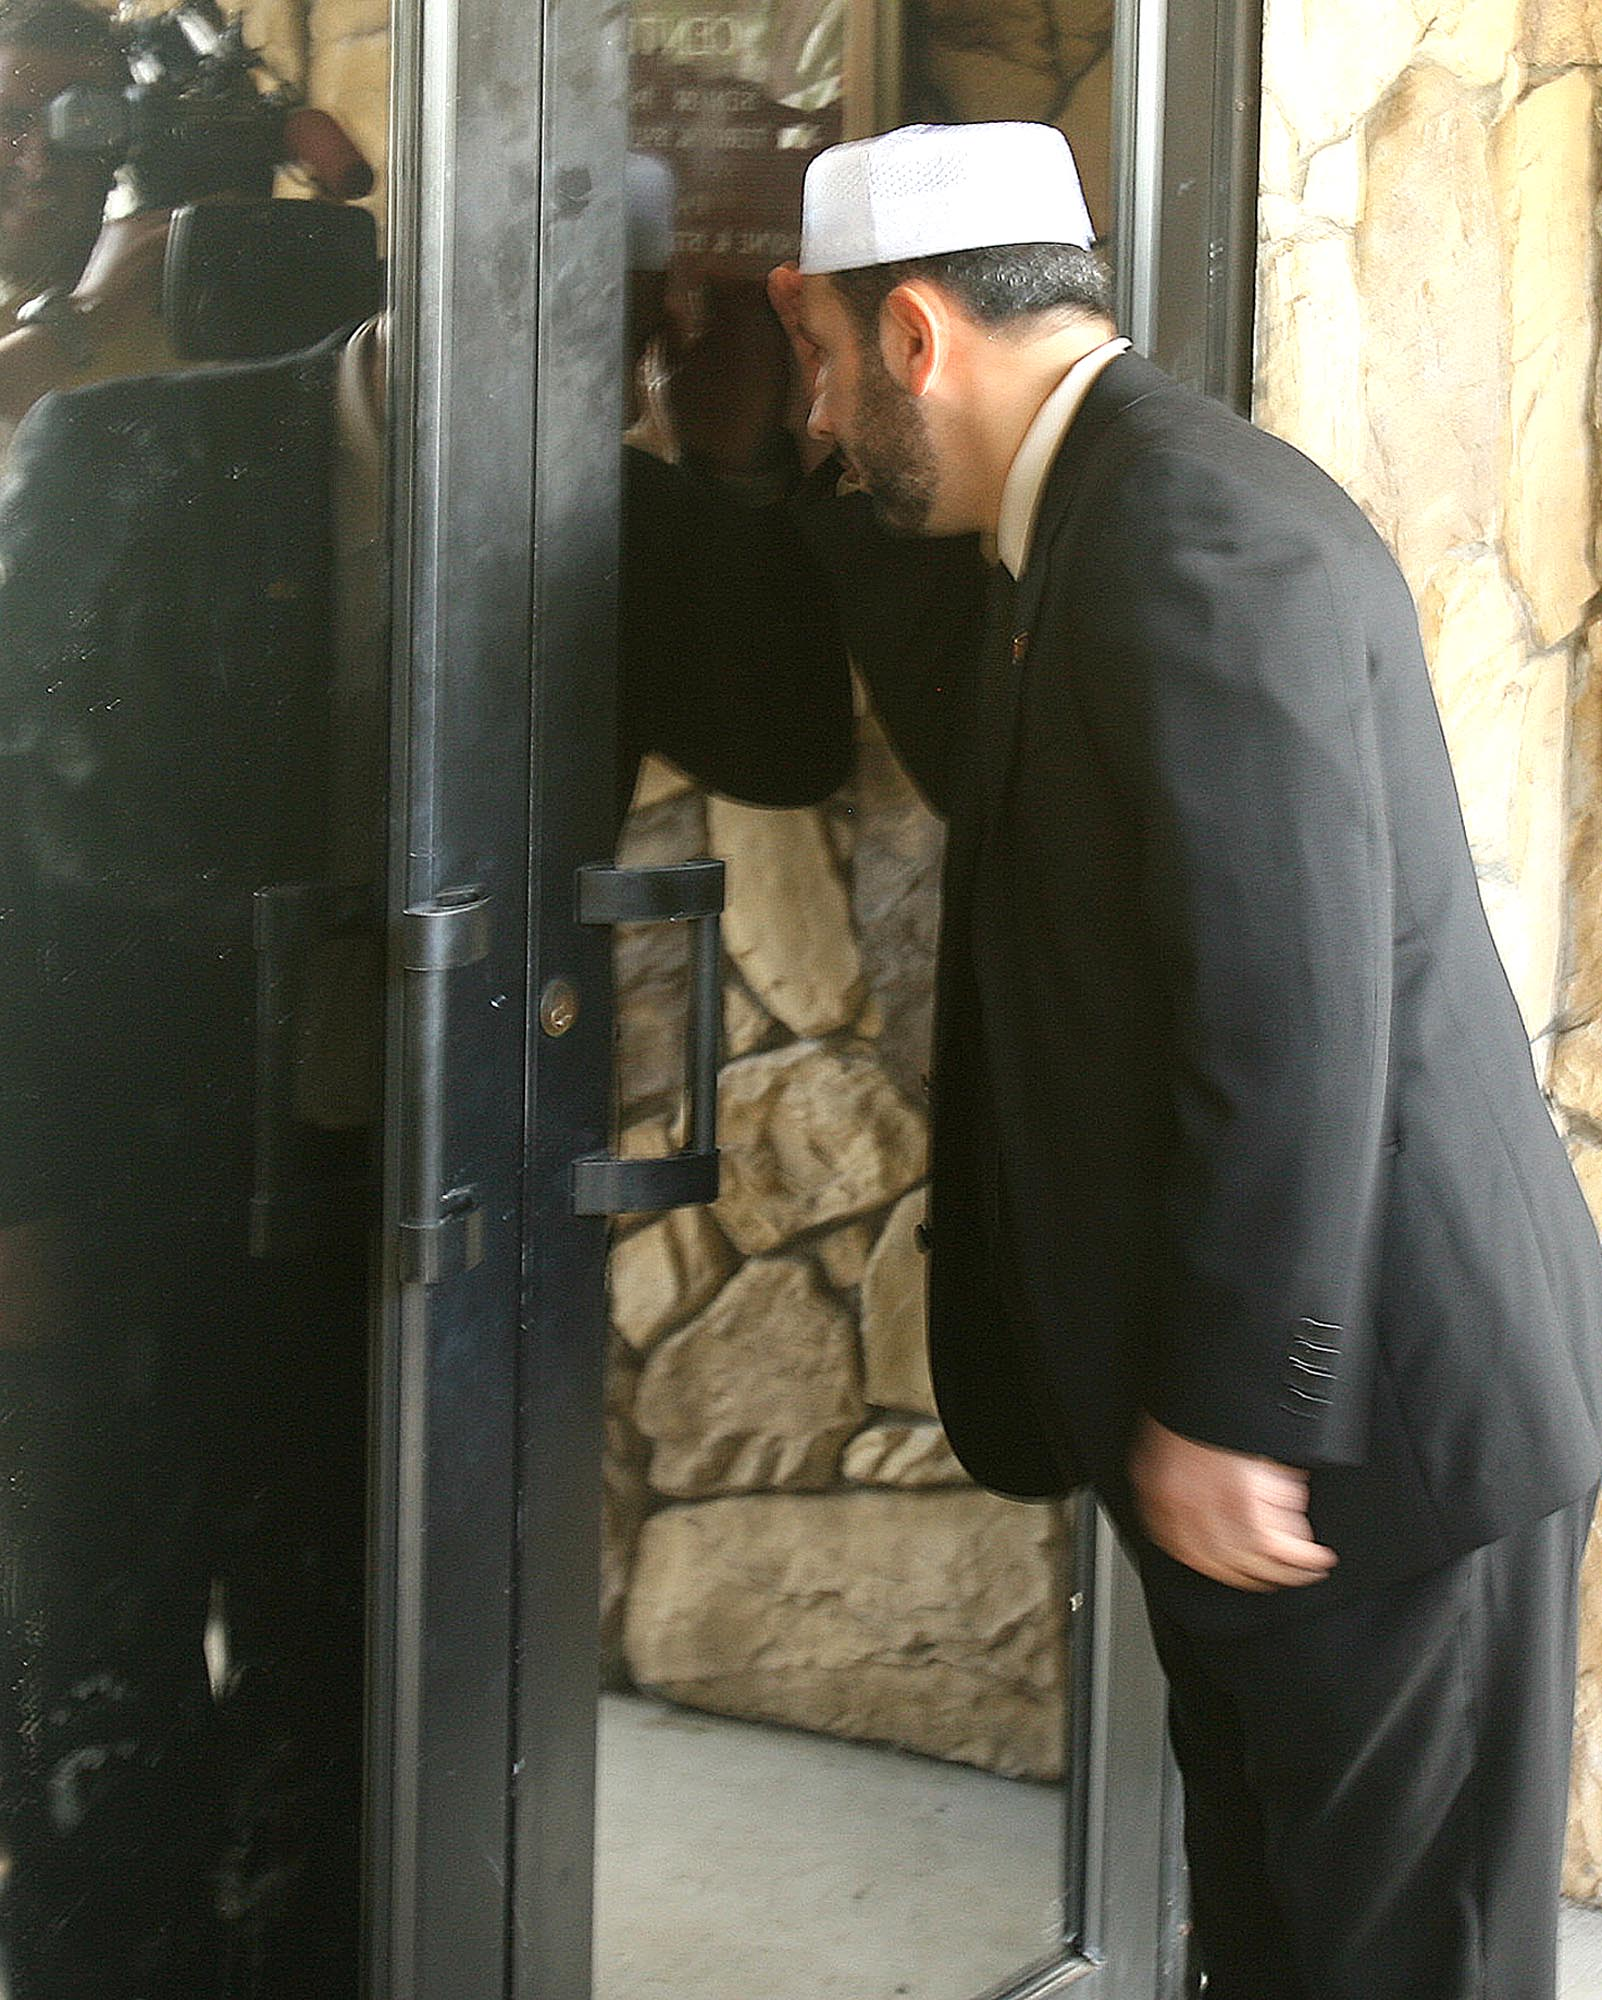 Imam Muhammad Musri, of the Islamic Society of Central Florida, peeks into the window at the Dove World Outreach Center in Gainesville, Florida on Wed...